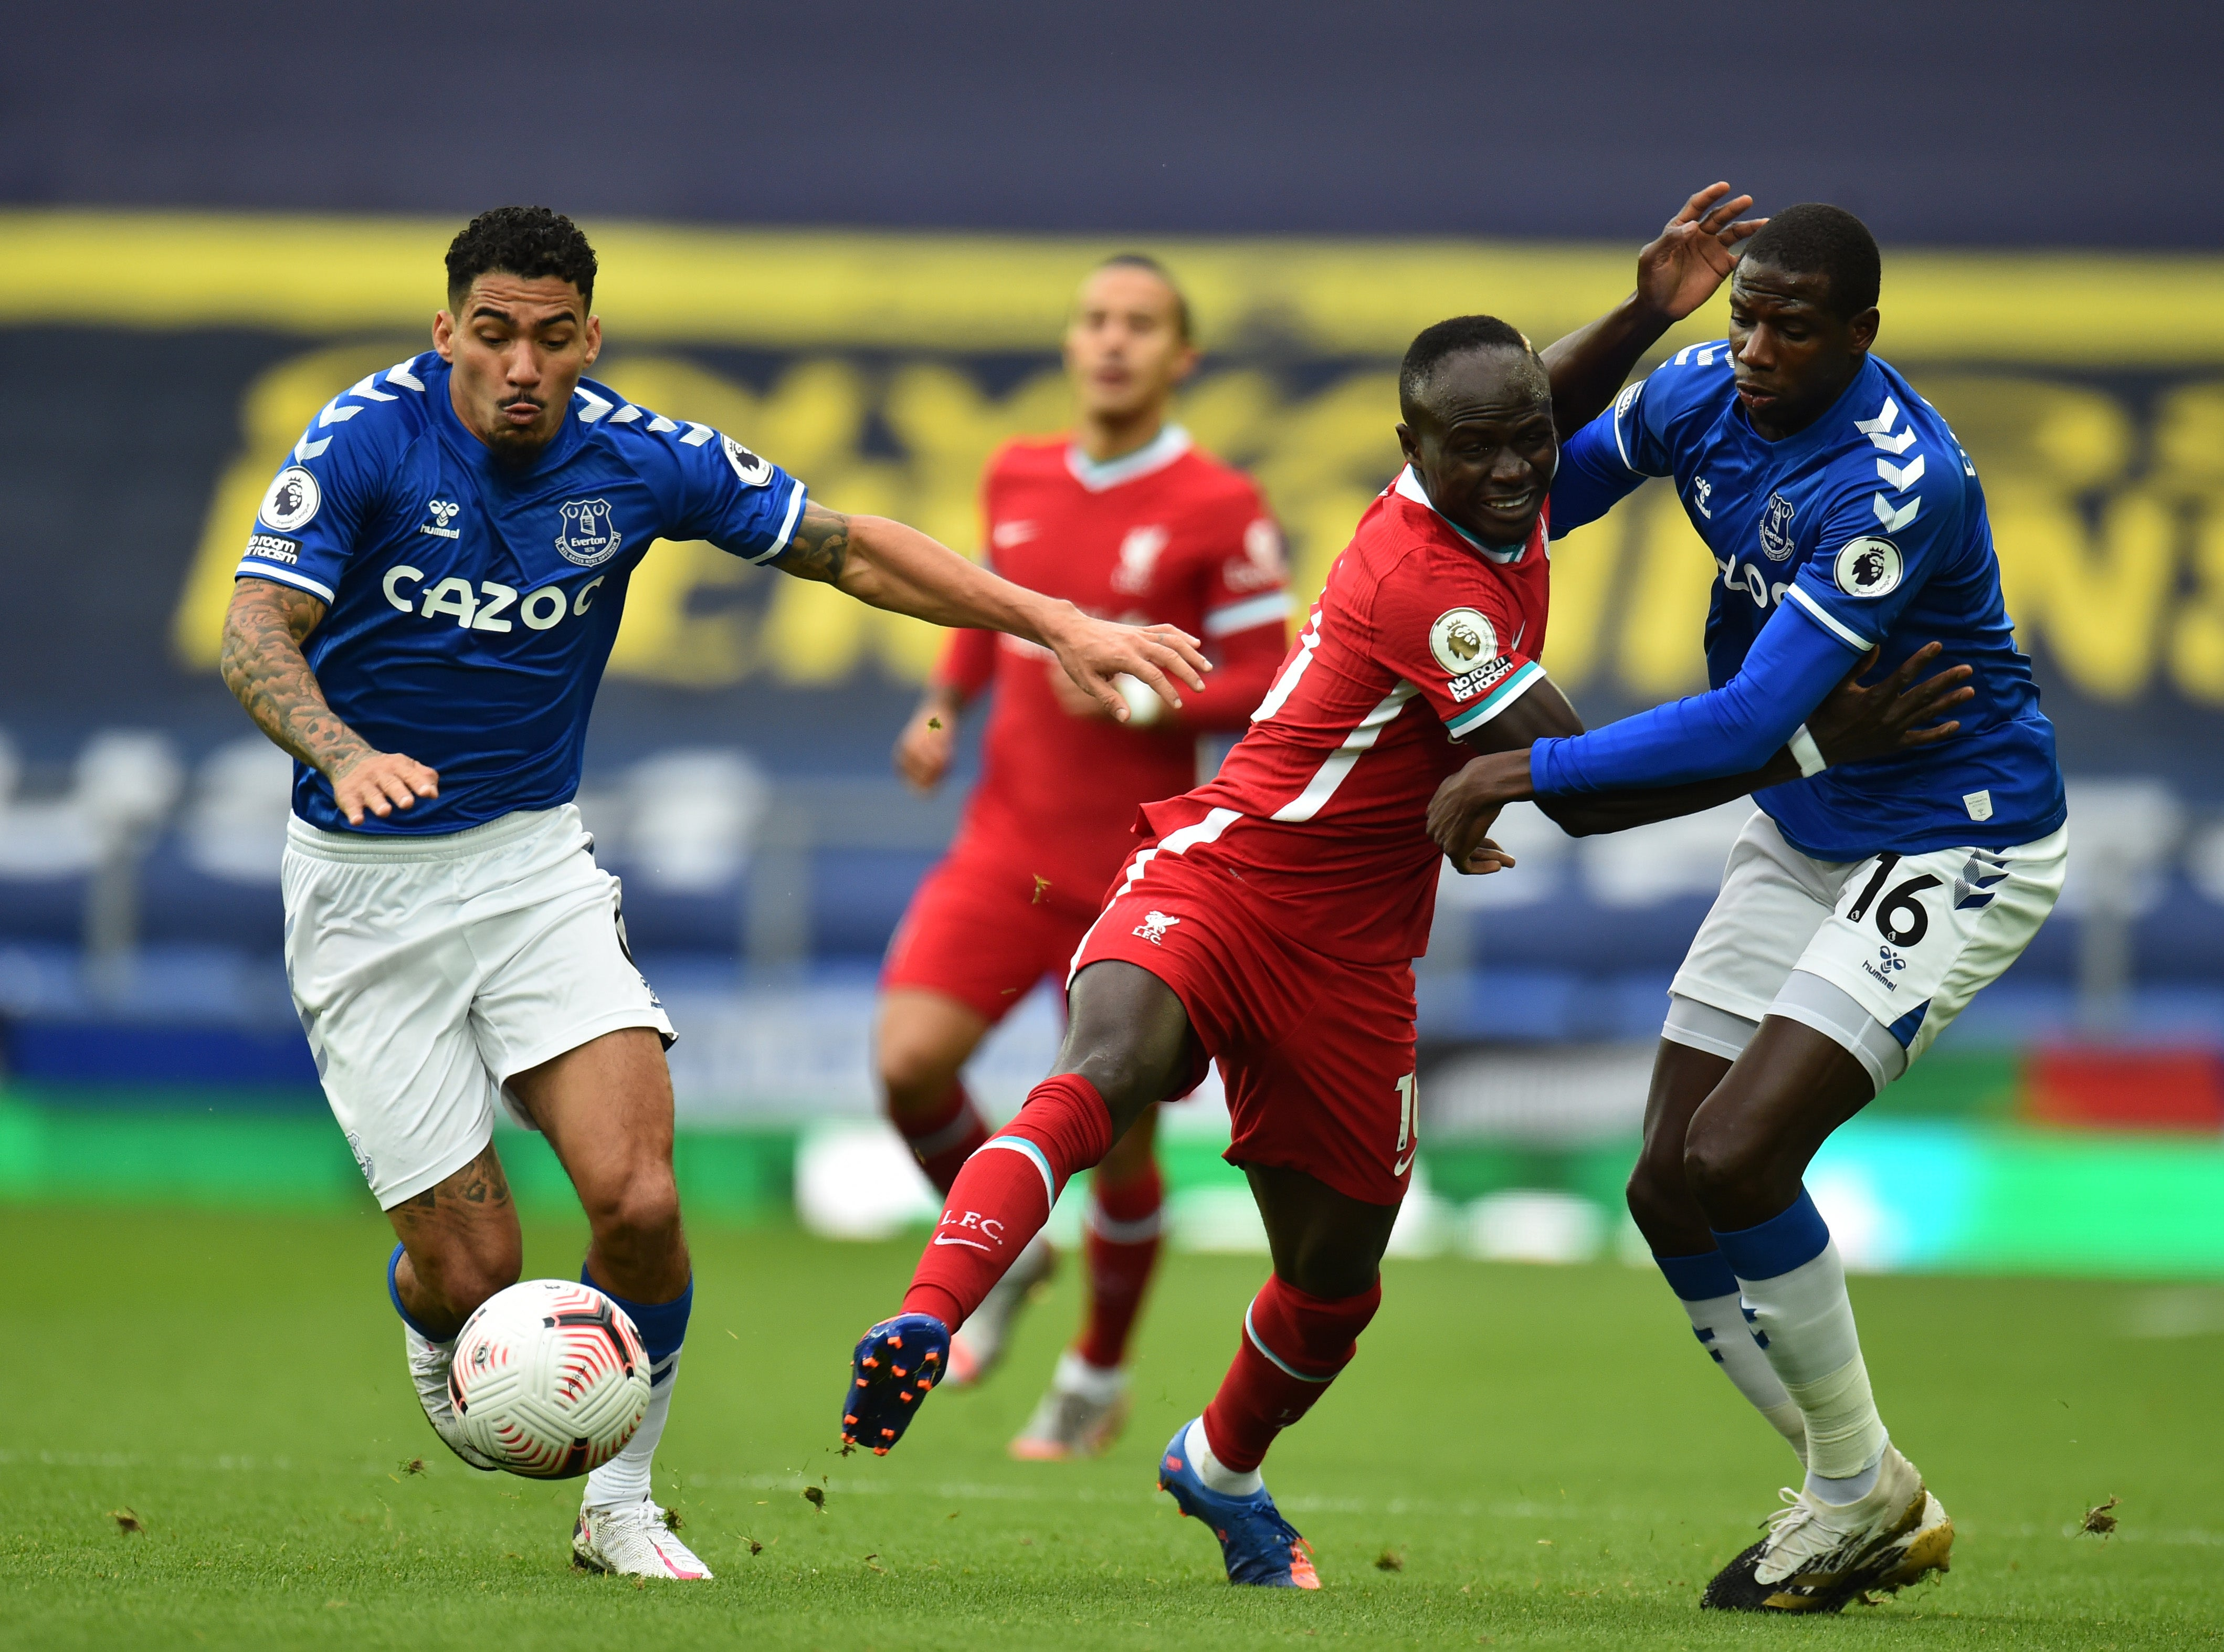 Everton vs Liverpool result, final score and match report | The Independent